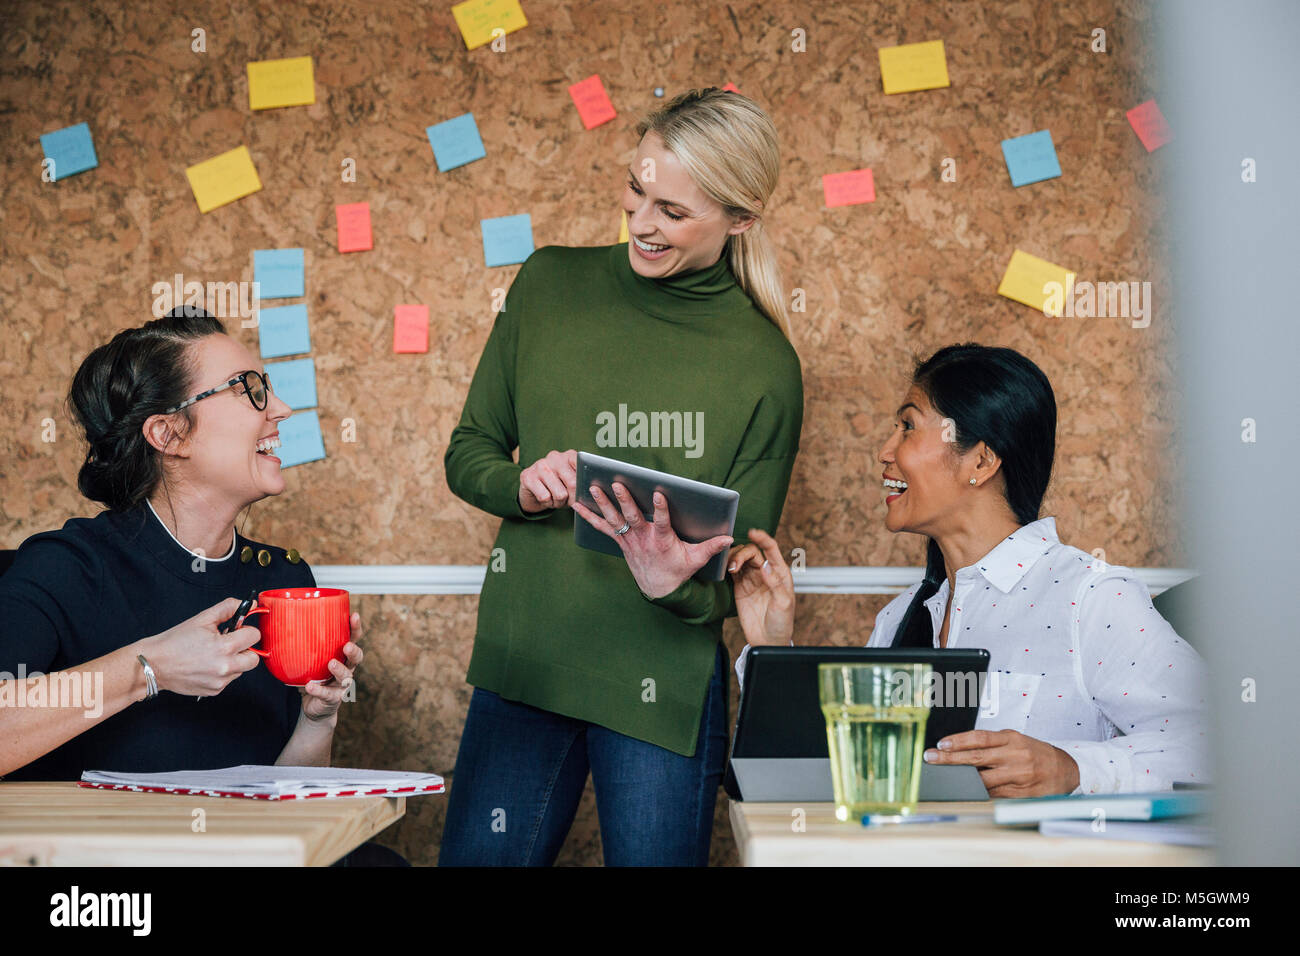 Women are working together in an office. They are talking and laughing as they use digital tablets. - Stock Image